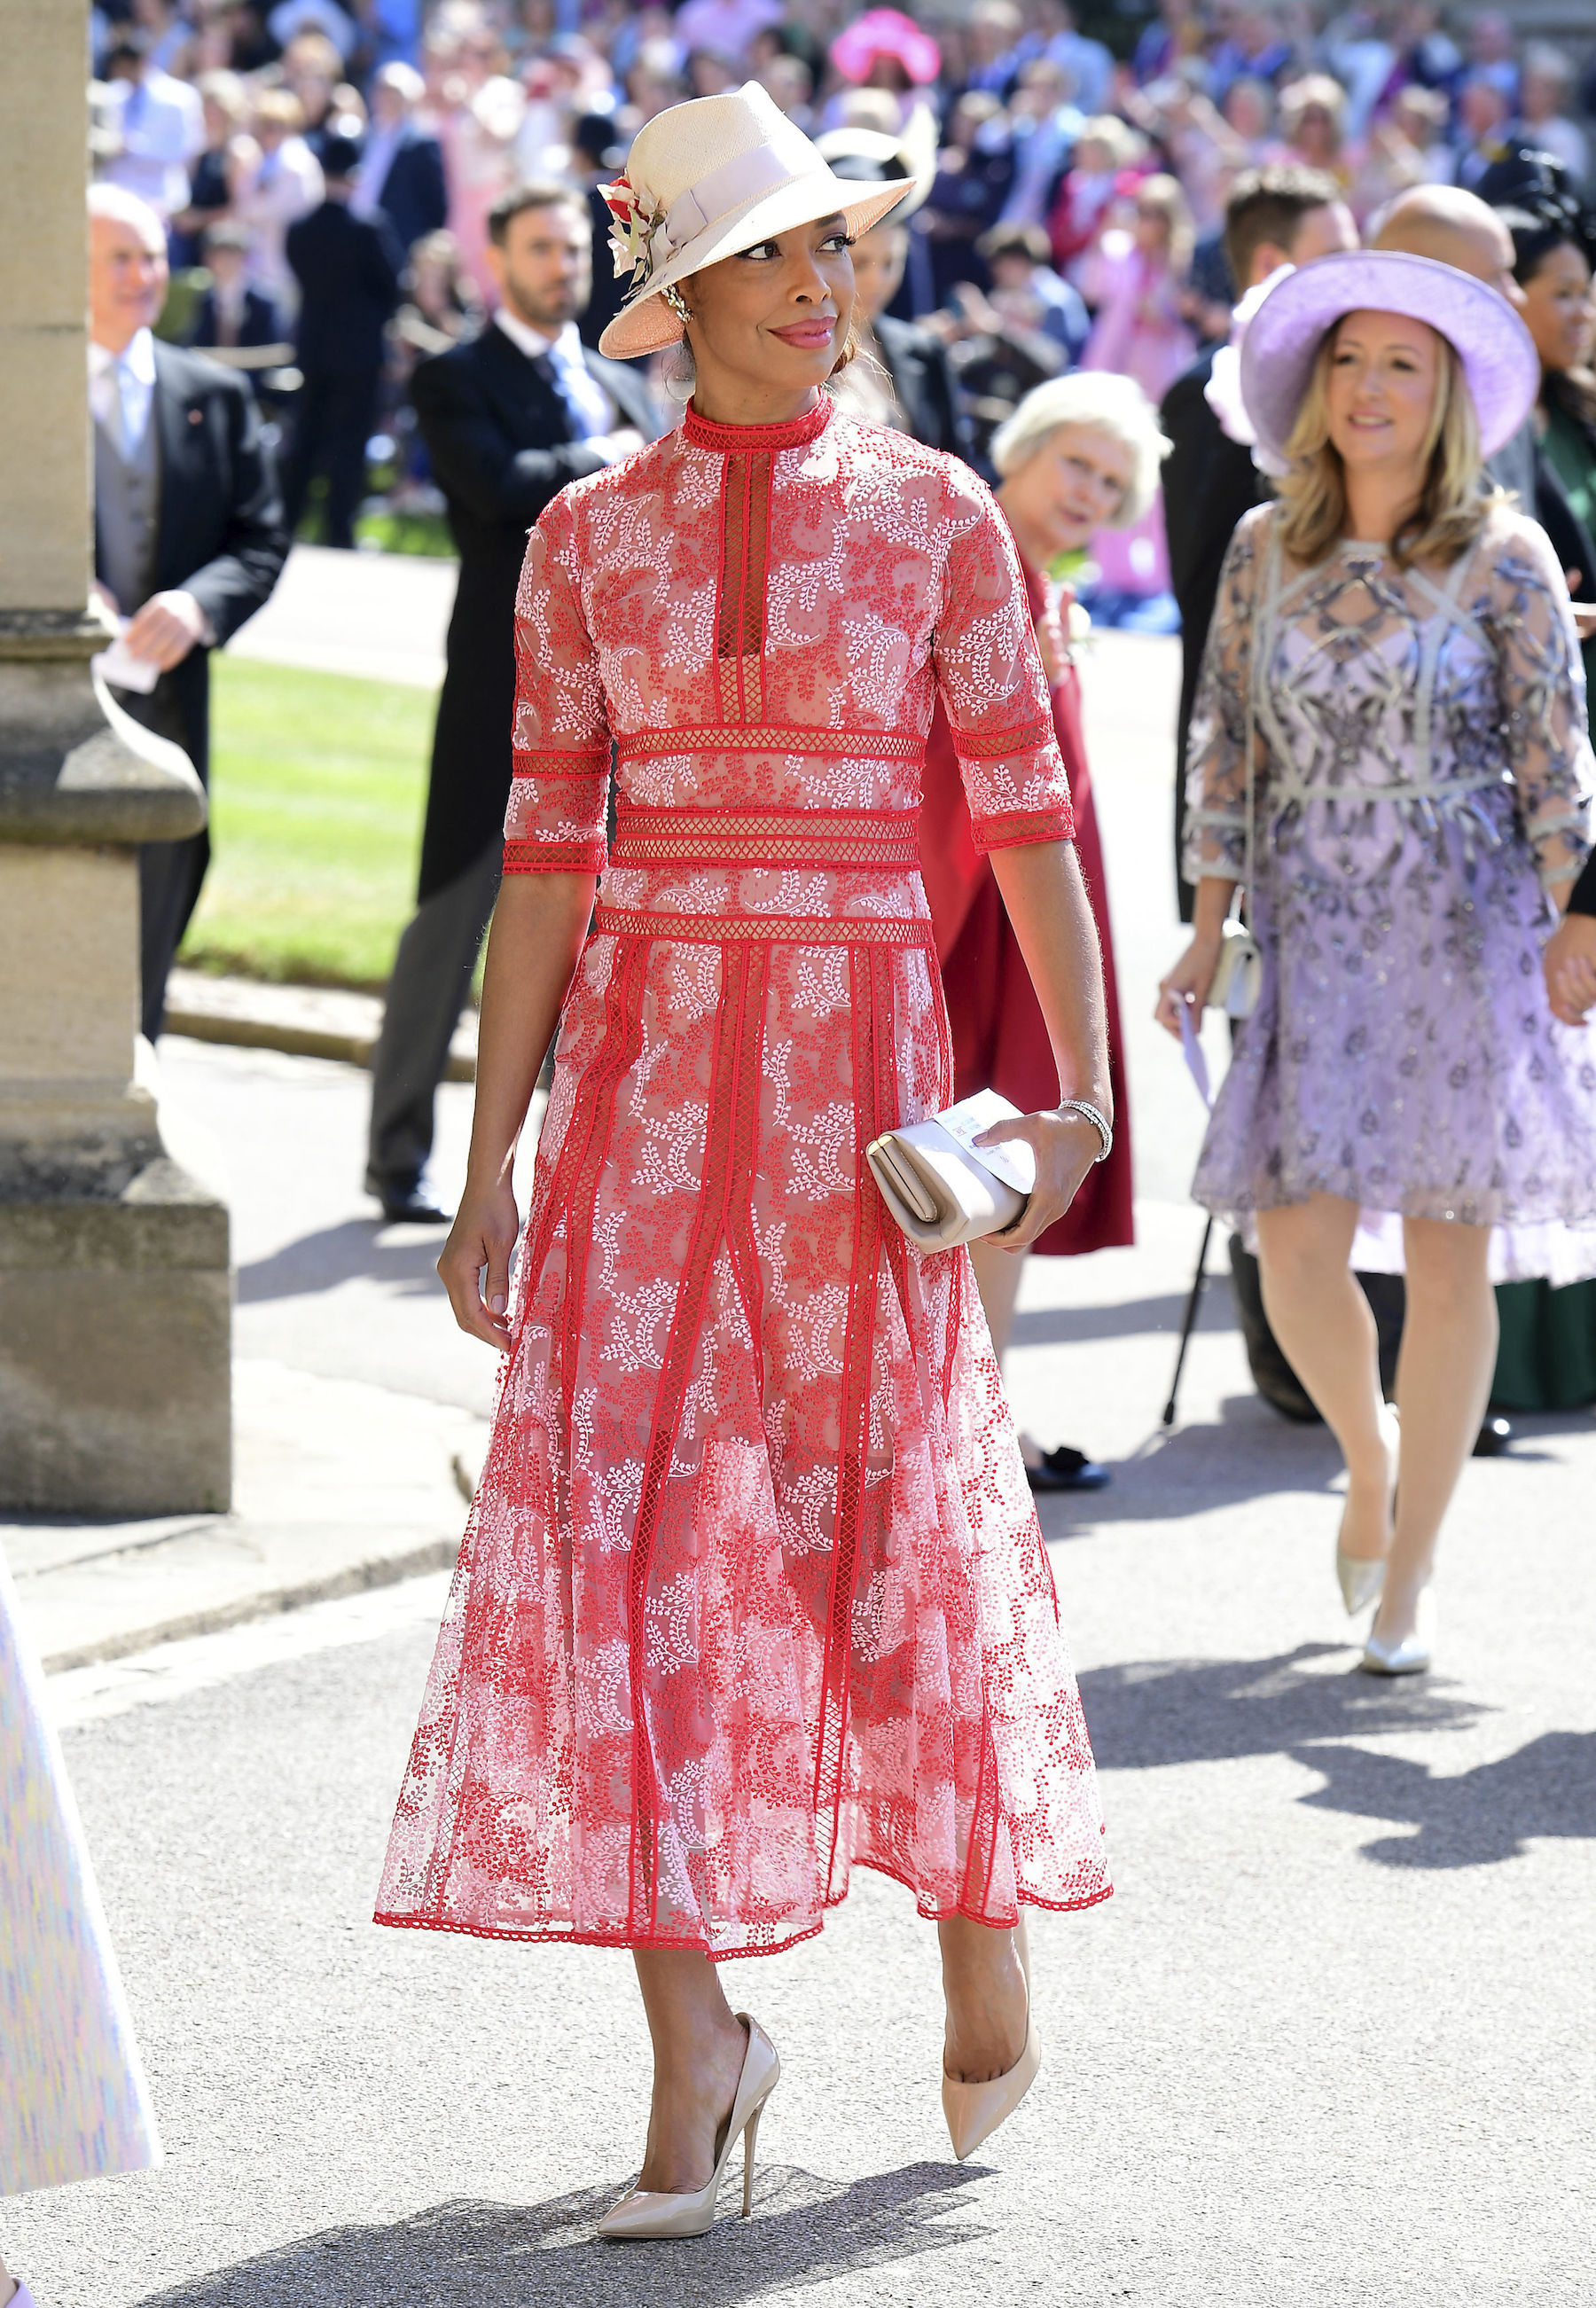 <div class='meta'><div class='origin-logo' data-origin='AP'></div><span class='caption-text' data-credit='Ian West/PA Wire'>Gina Torres arrives at St George's Chapel at Windsor Castle for the wedding of Meghan Markle and Prince Harry.</span></div>